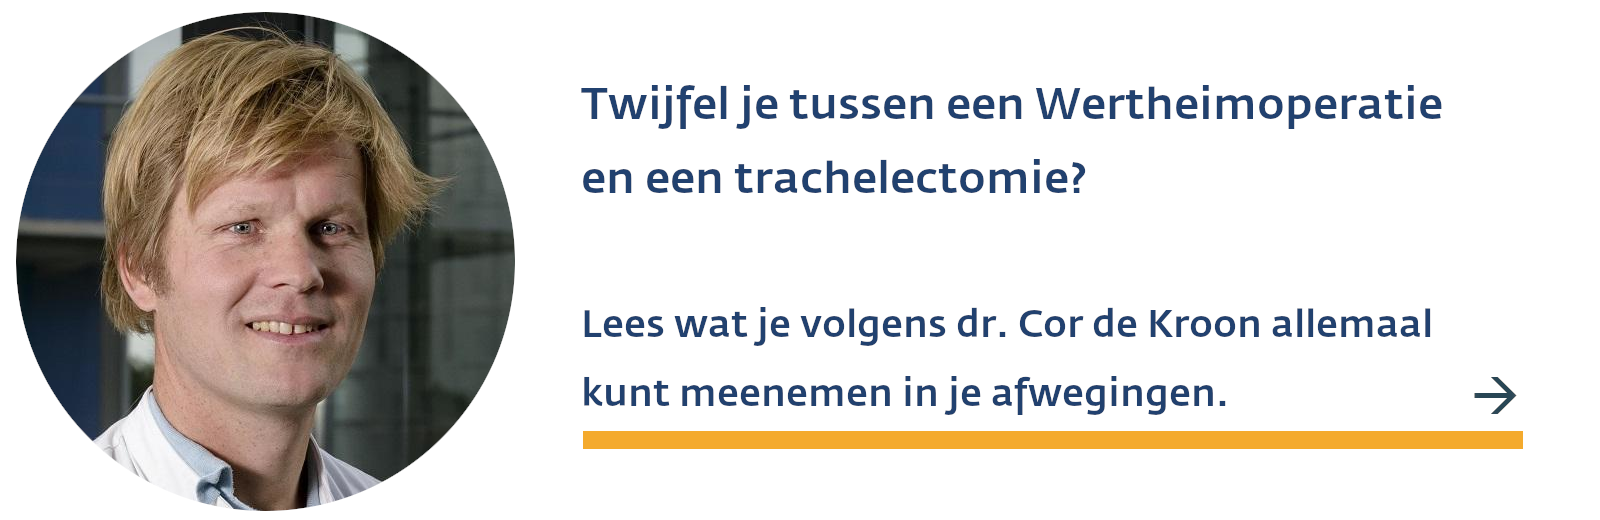 Gynaecoloog vertelt over trachelectomie